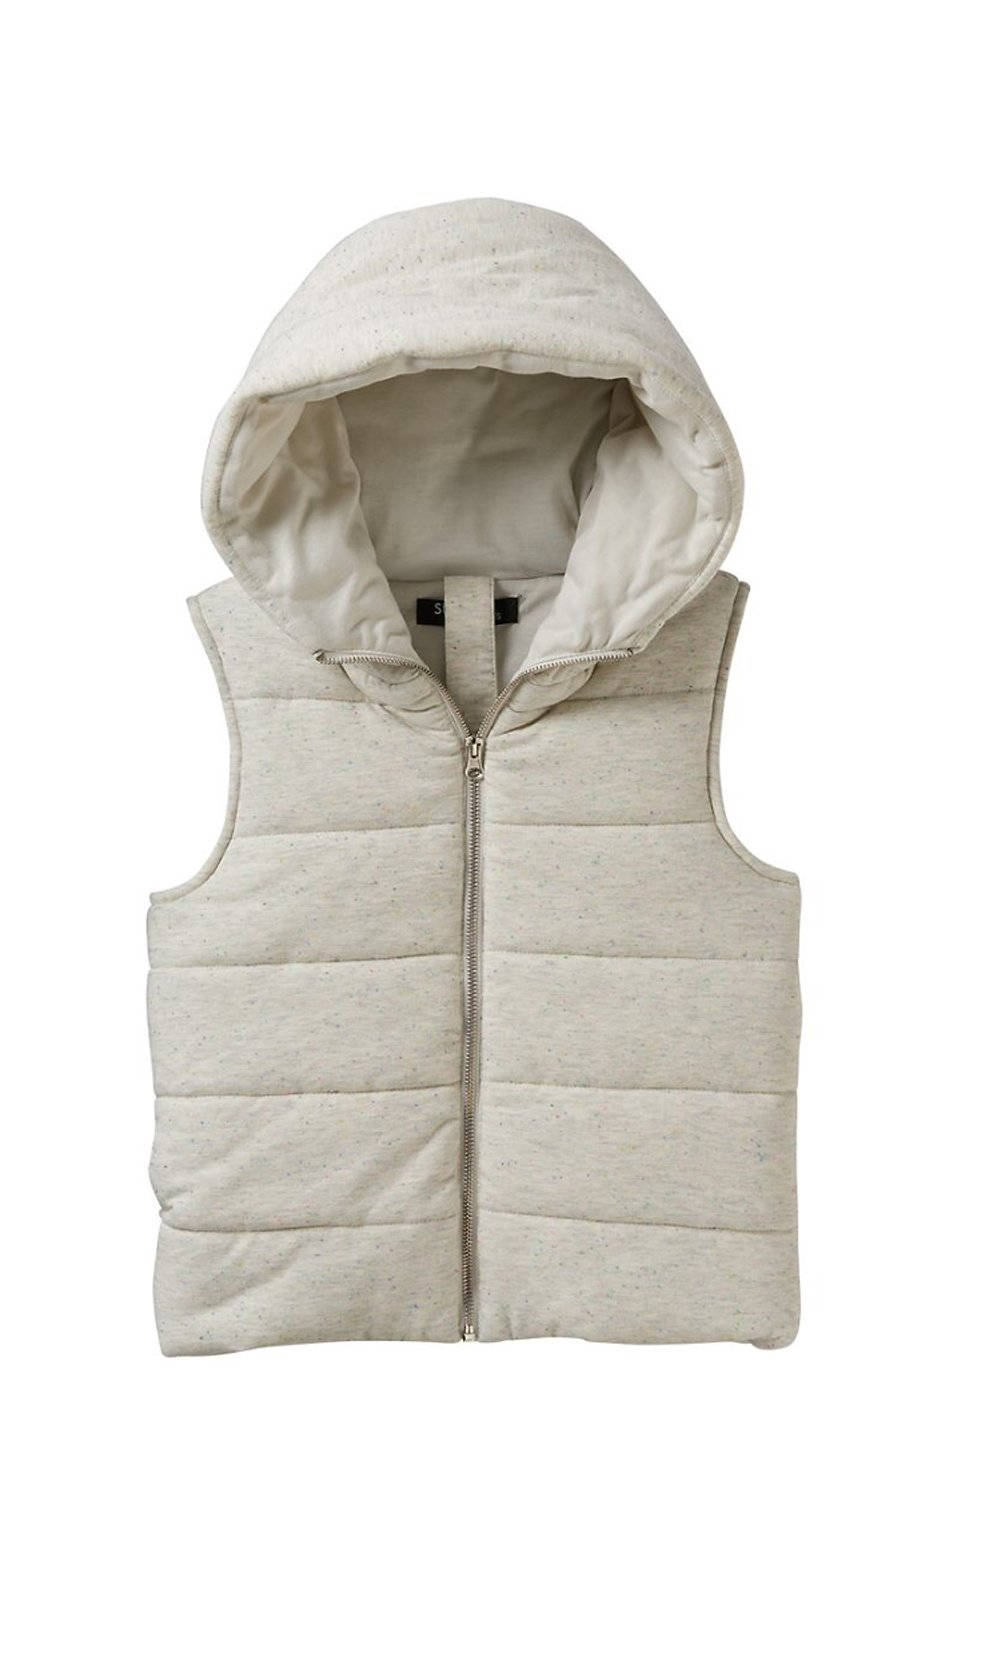 Sugar Rush Girls Speckled Hooded Puffer Vest (Large, Oatmeal Nep) by Sugar Rush (Image #1)